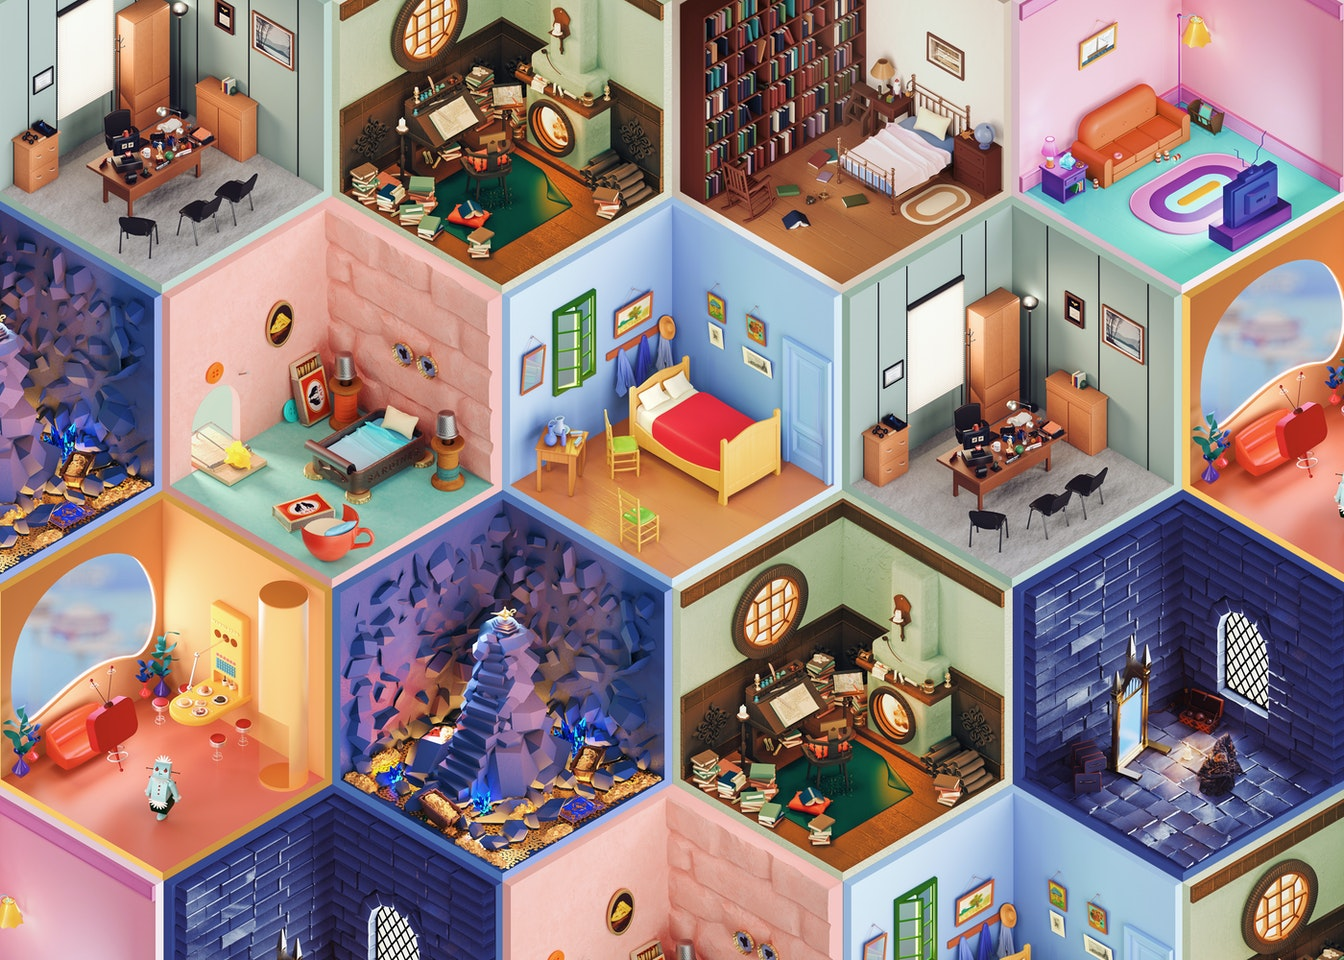 Toy Rooms